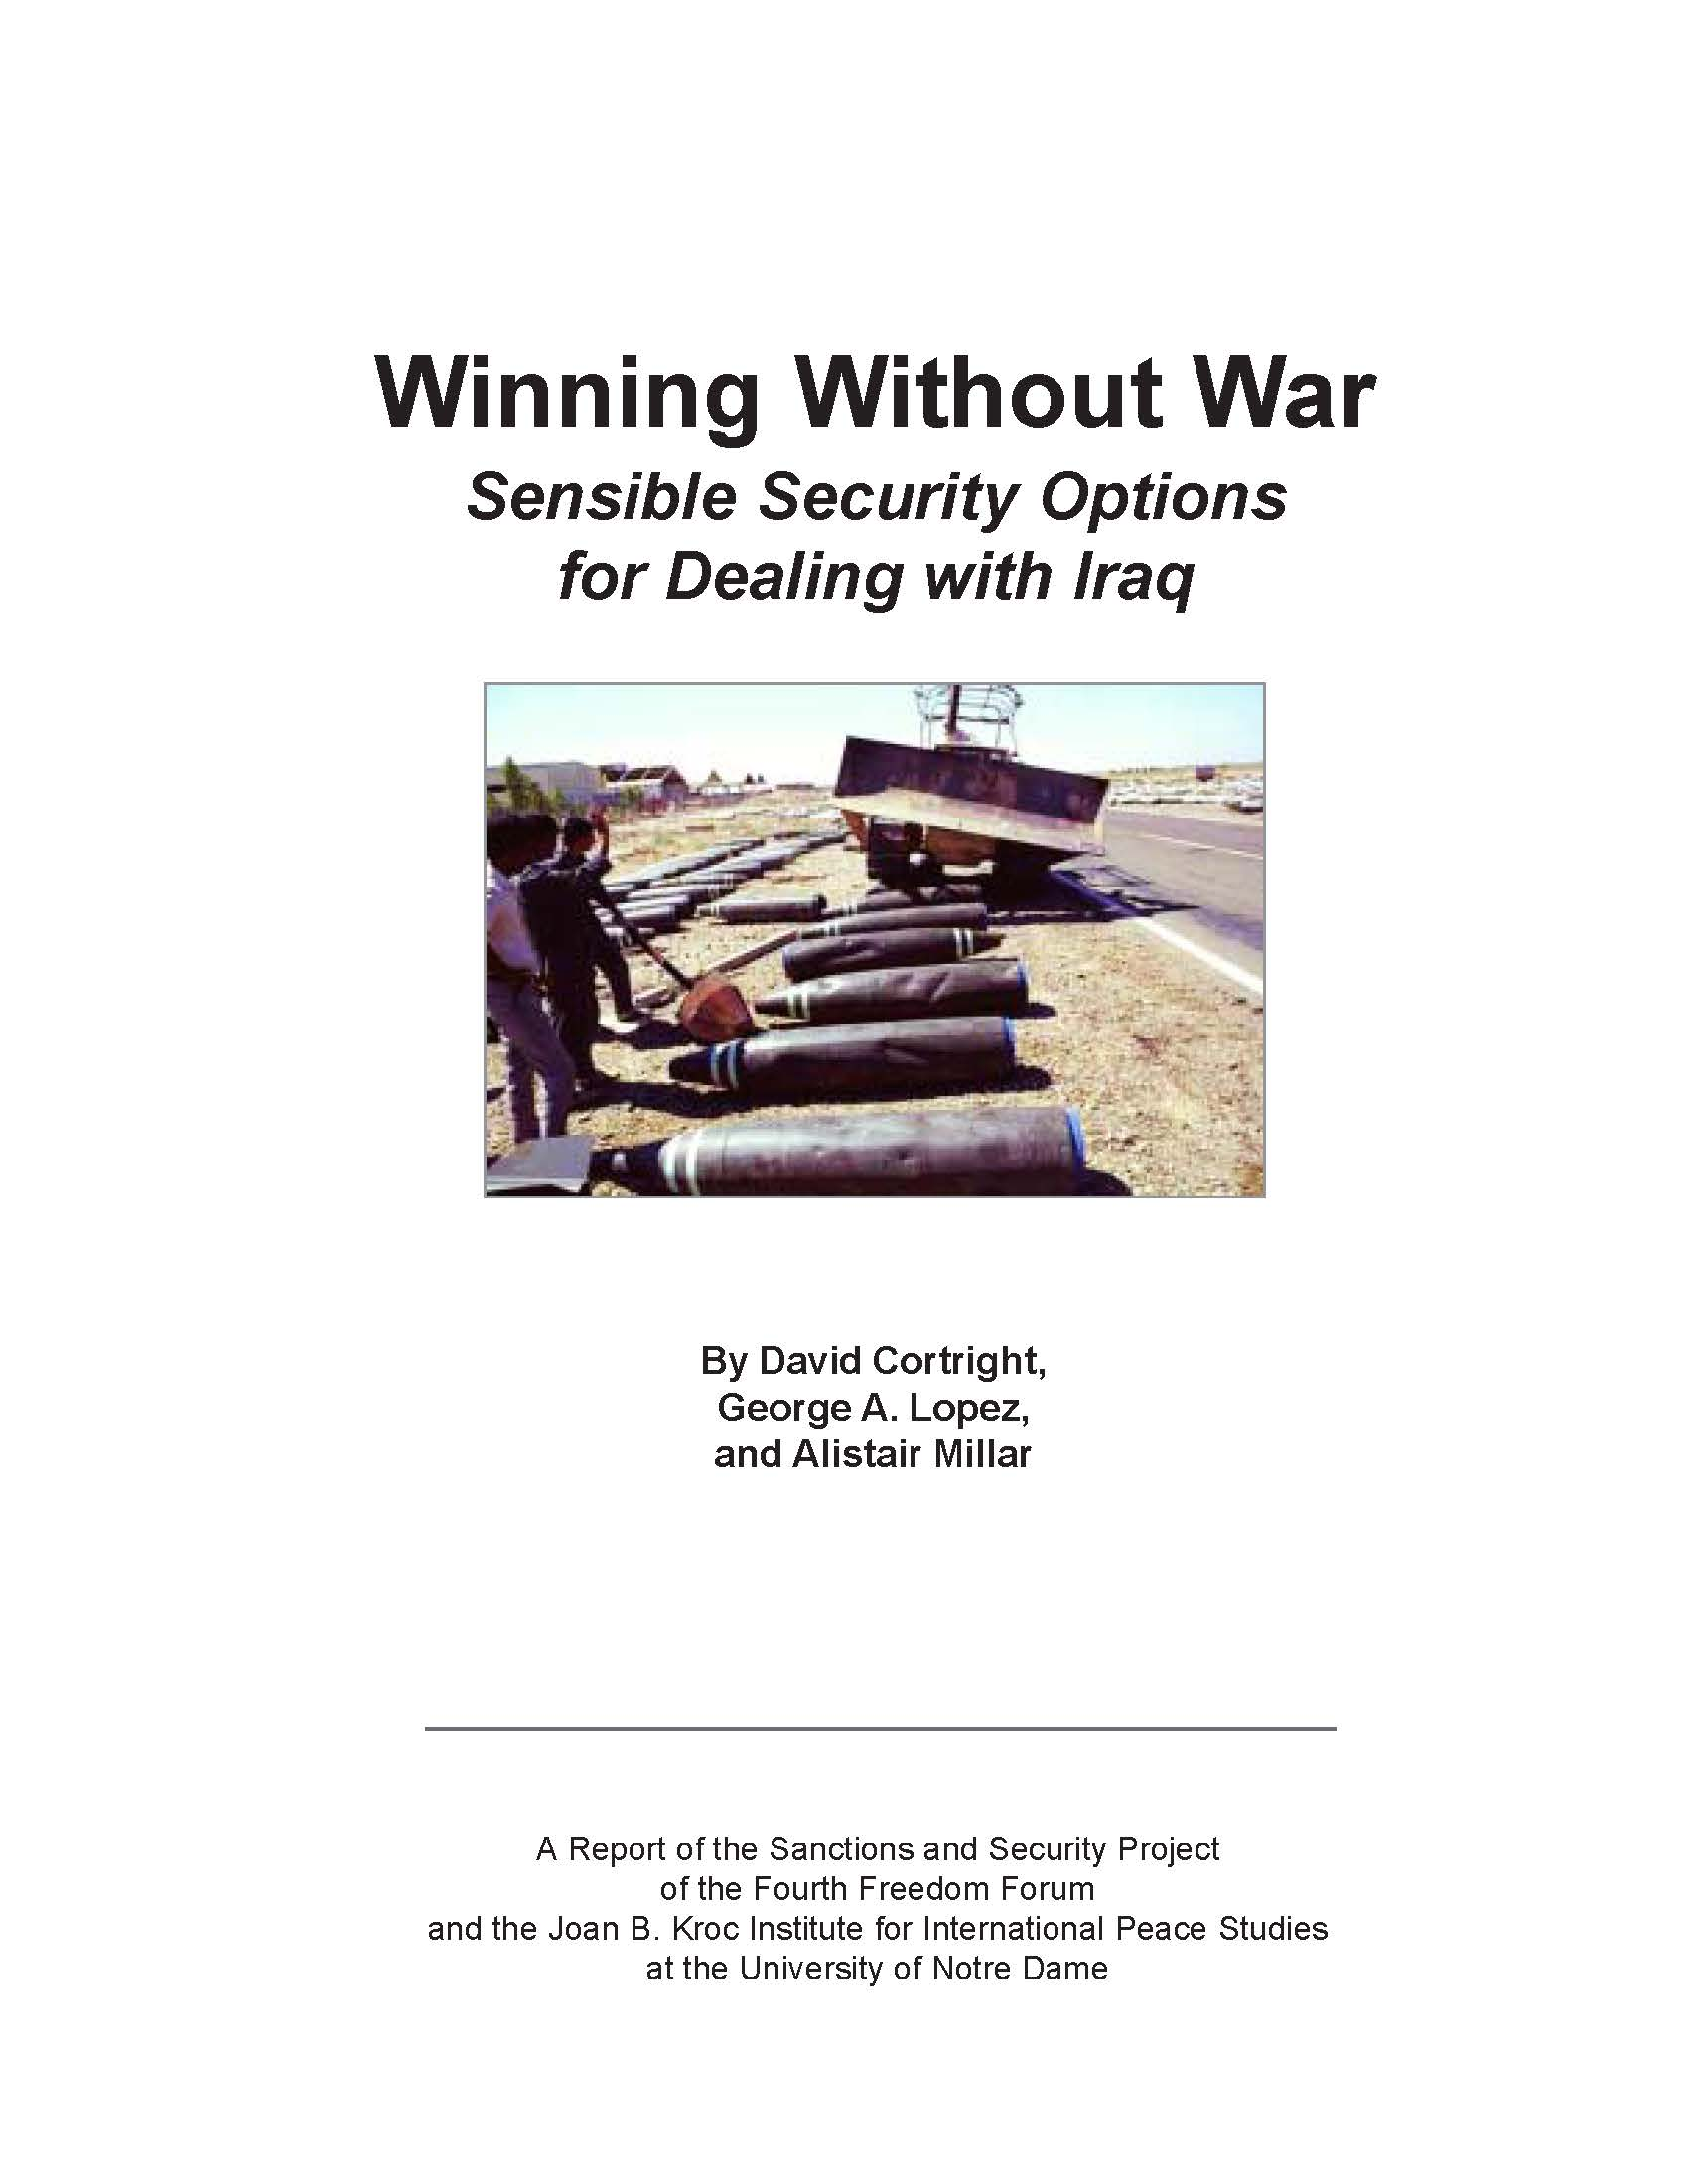 Winning Without War: Sensible Security Options for Dealing with Iraq